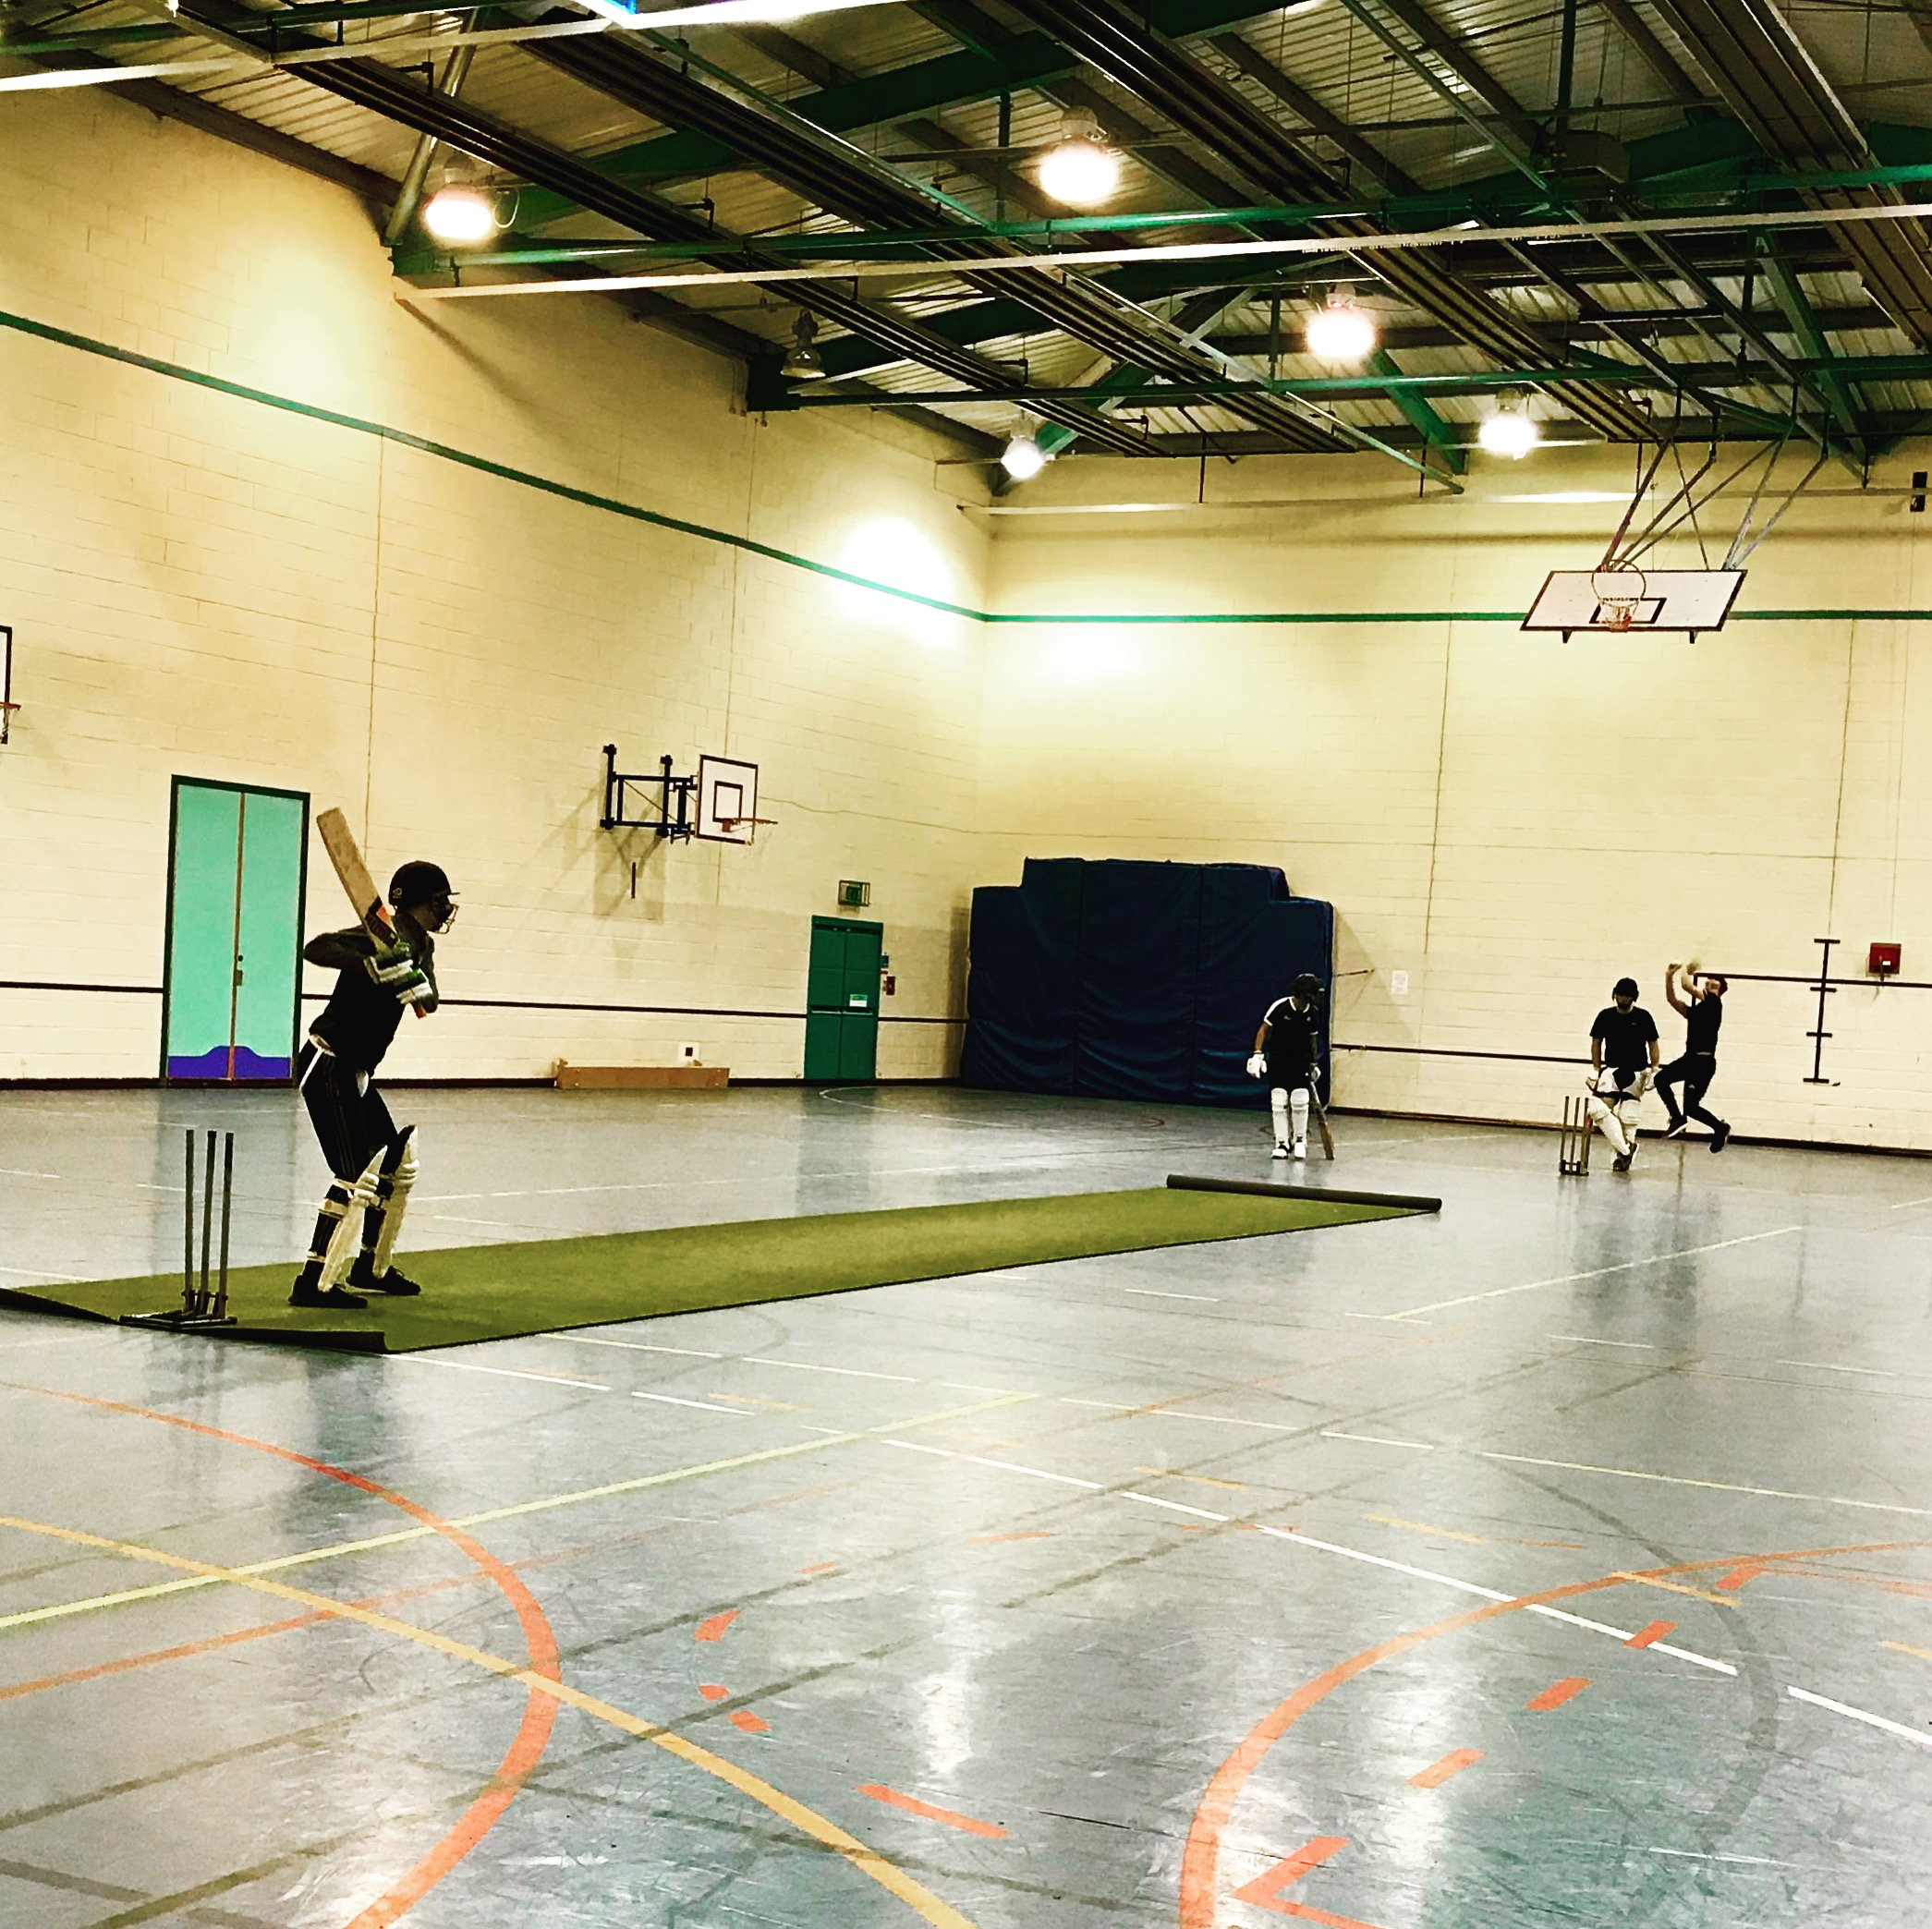 Nets without nets: A customised game to develop outdoor cricket batting skills.